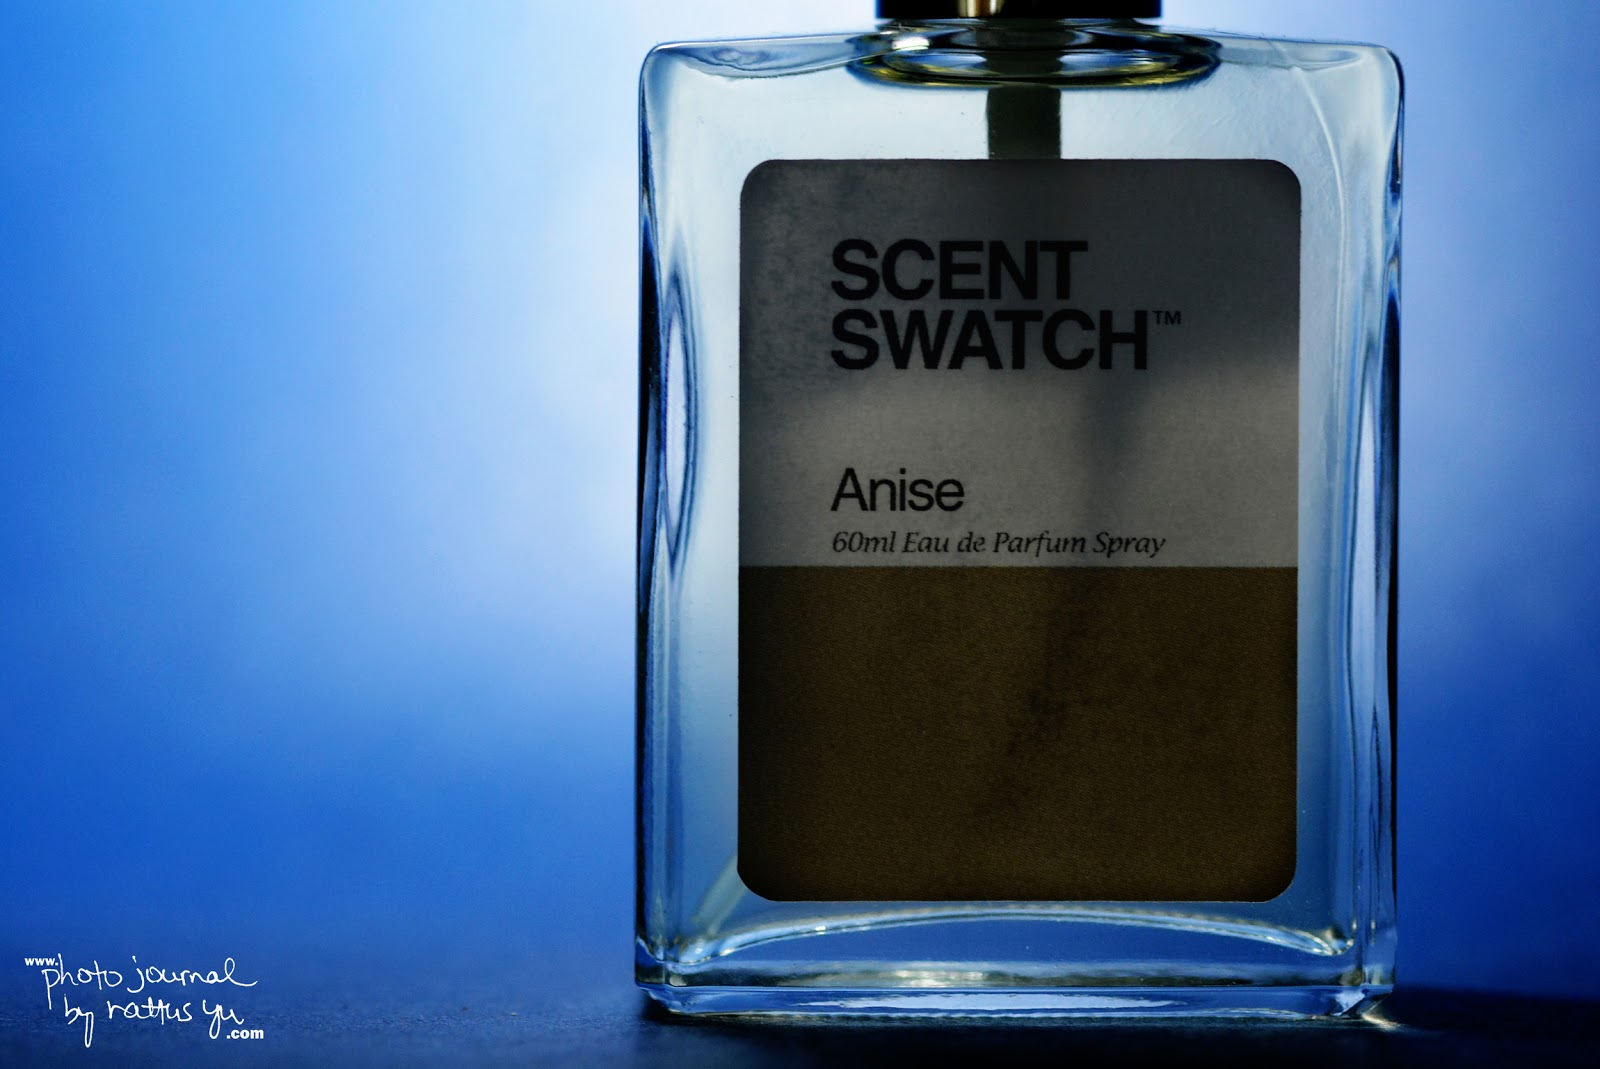 Scent Swatch in ANISE